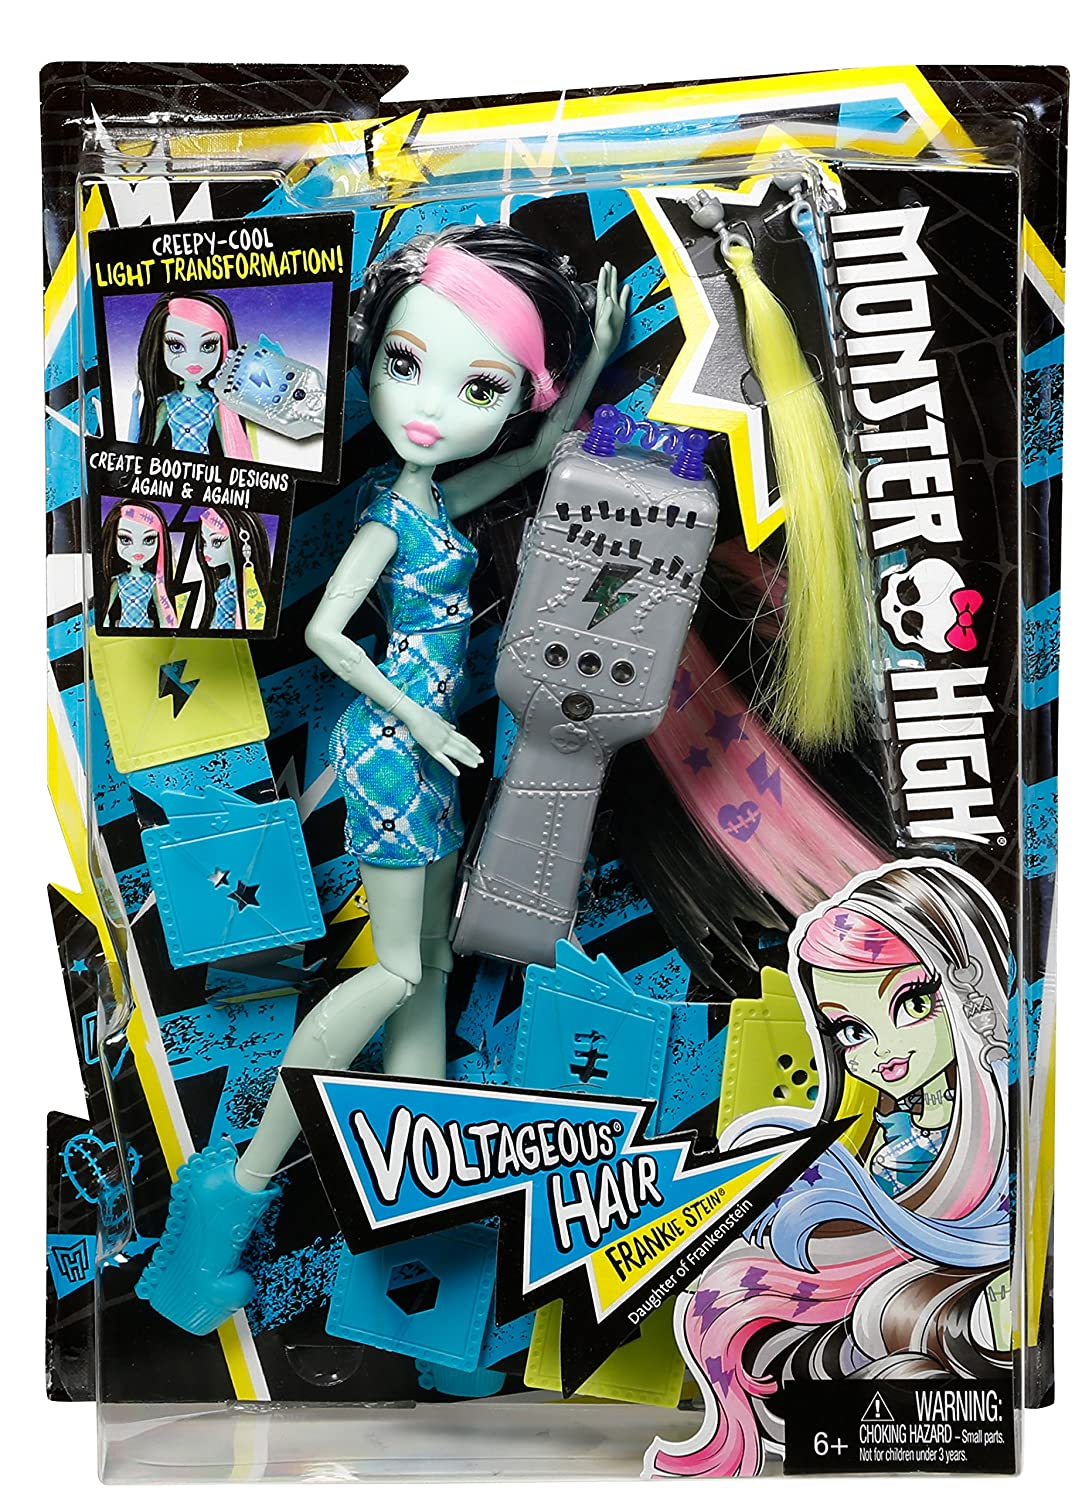 Monster High Frankie Cabello Monstruoso: Amazon.com.mx: Juegos y ...